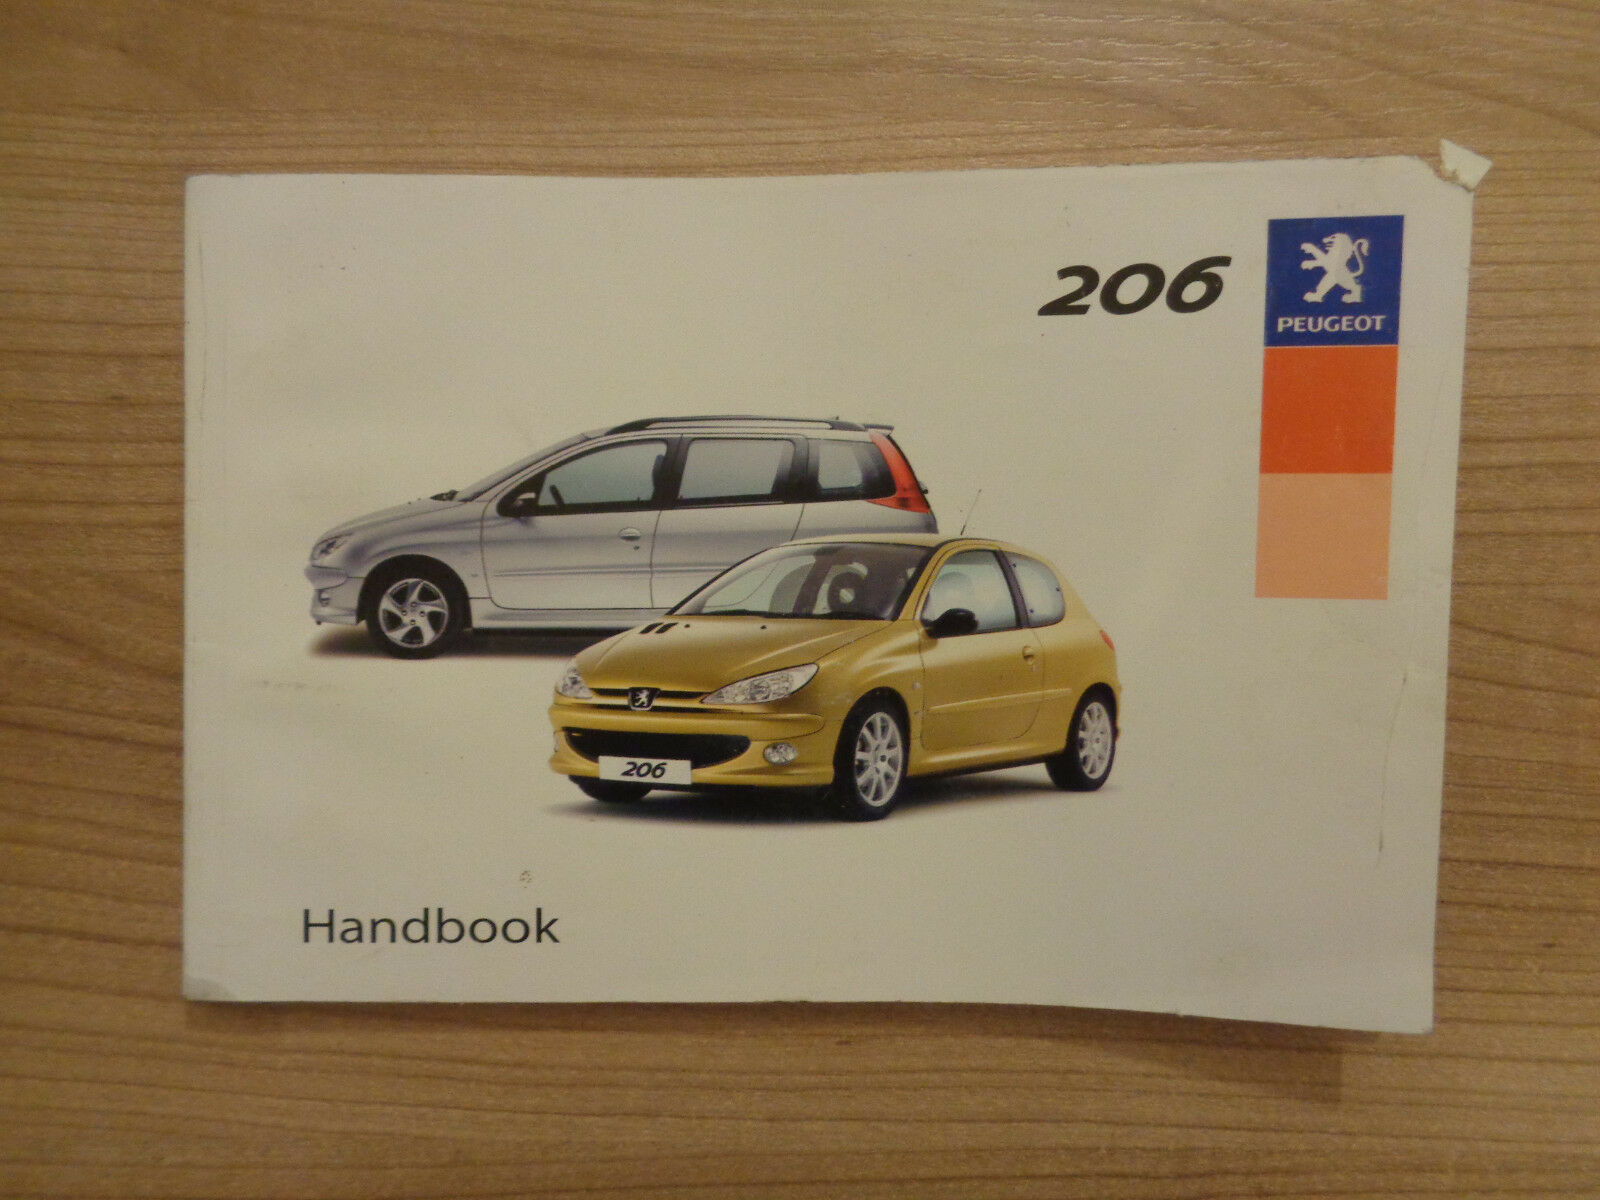 Peugeot 206 Owners Handbook/Manual 02-04 1 of 1Only 1 available ...